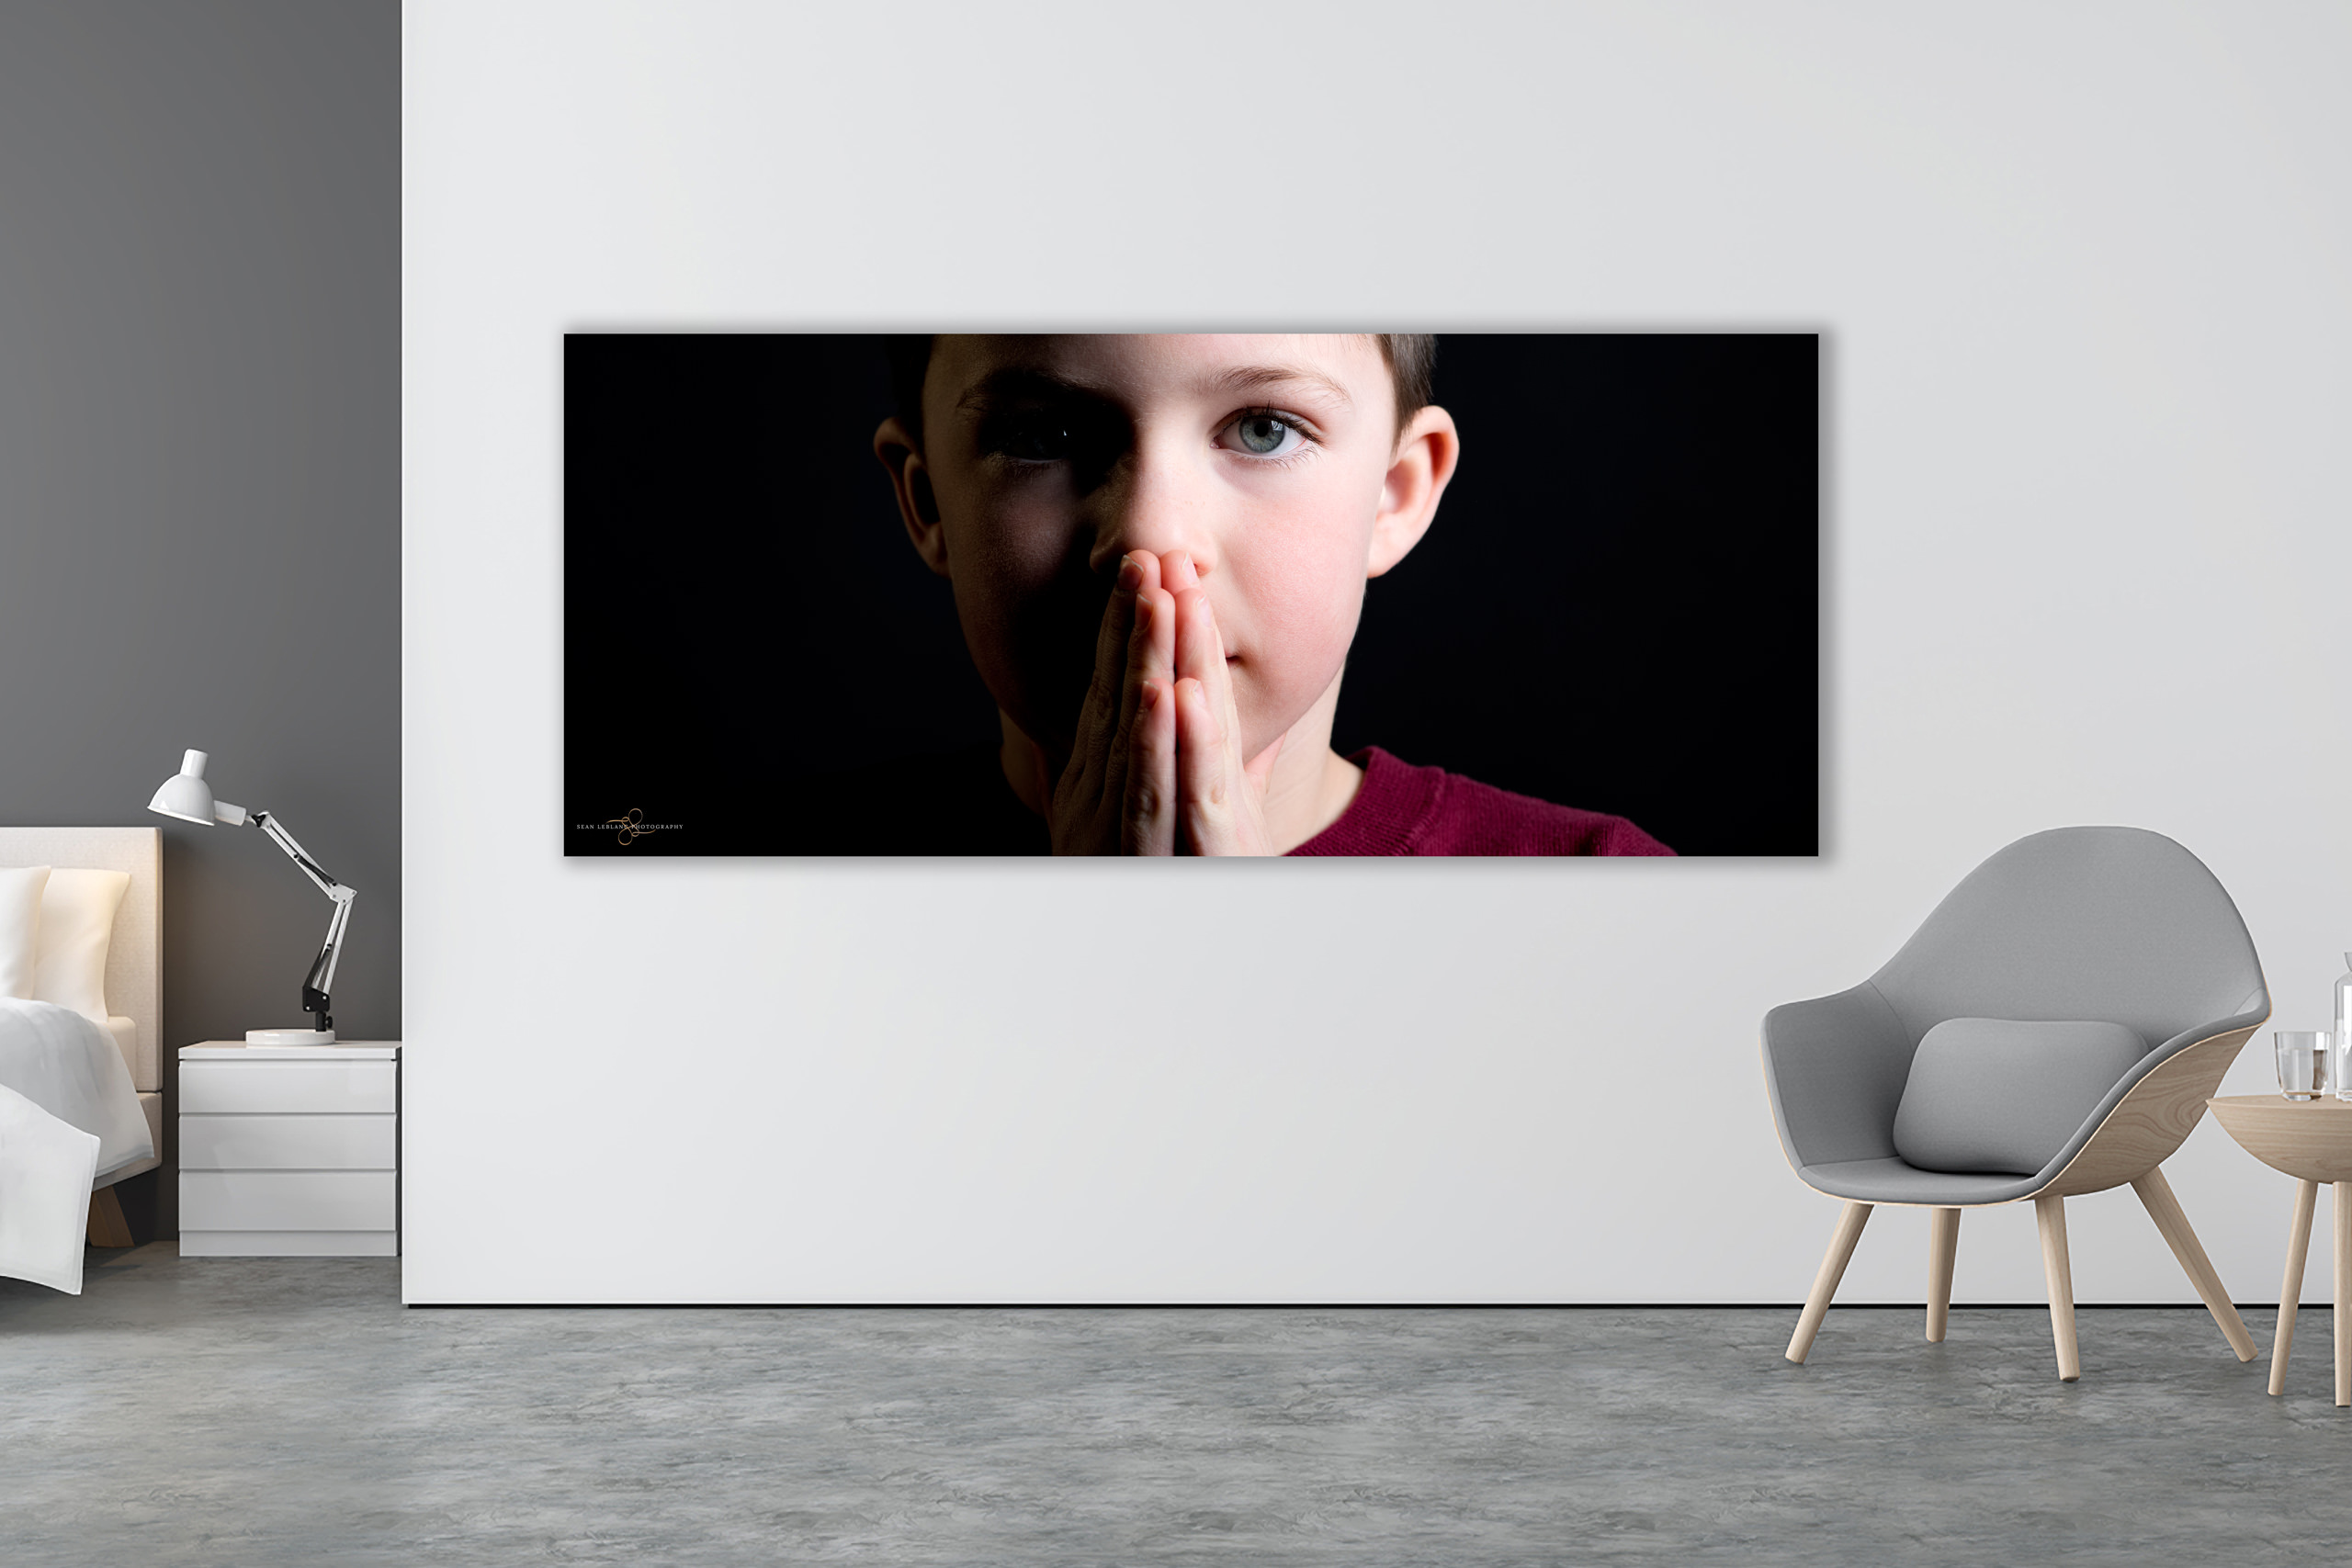 panoramic wall art of a young boy in a studio on the wall of a modern room by calgary portrait photographer sean leblanc